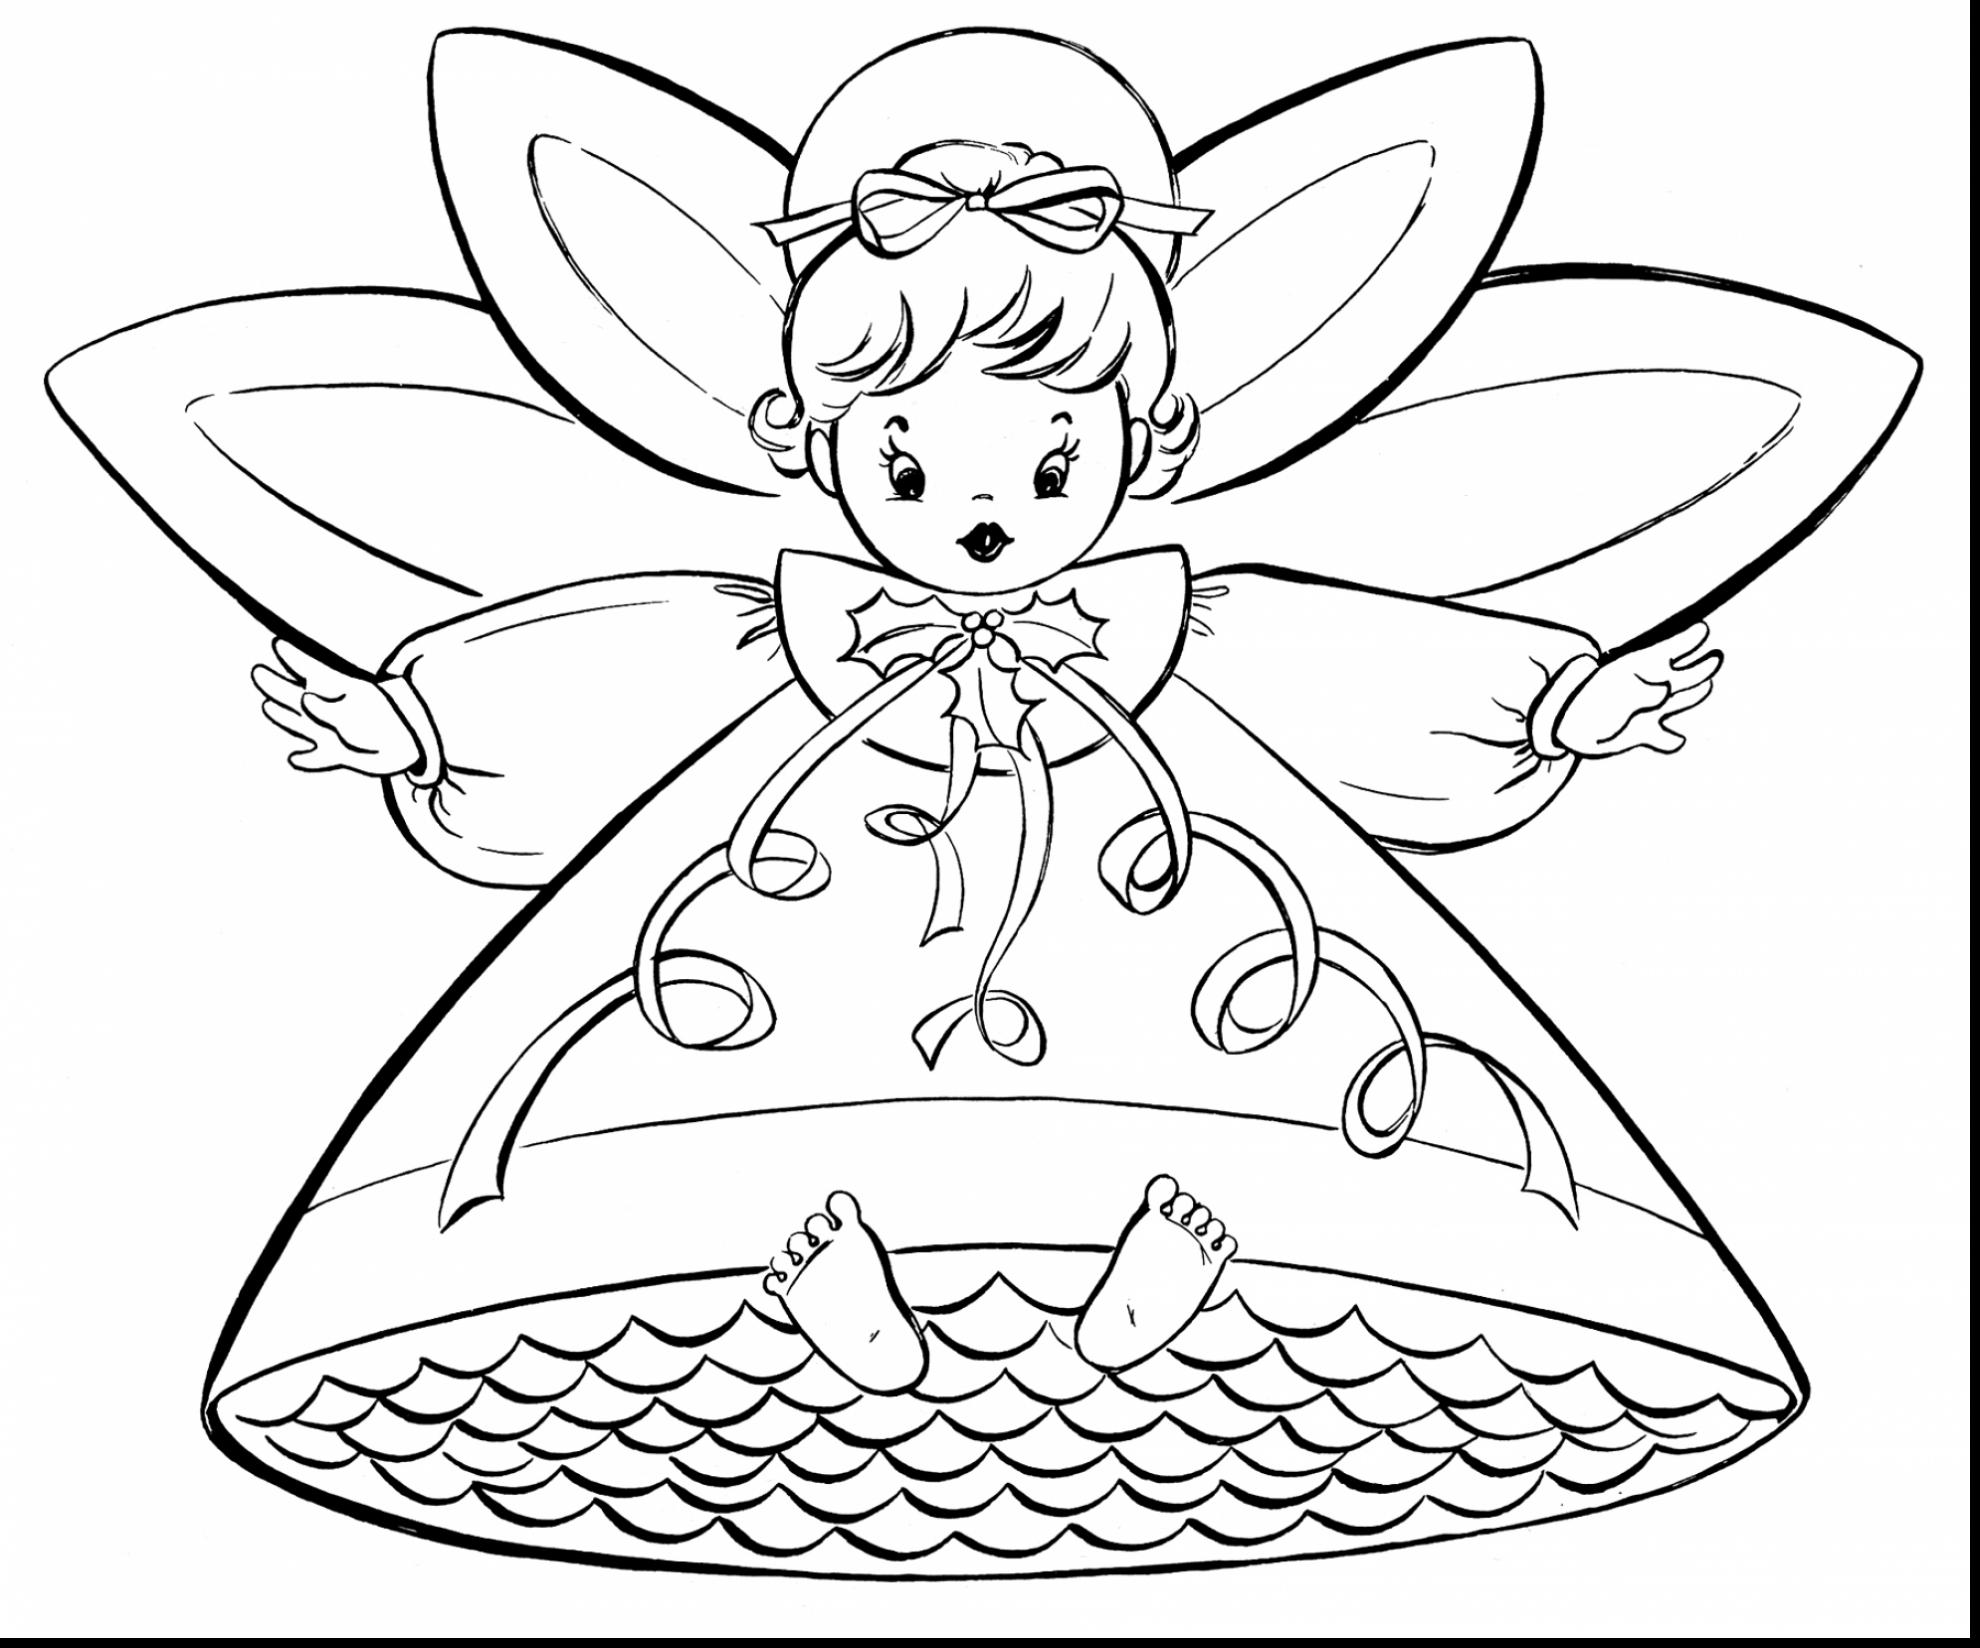 1980x1648 Splendid Angel Coloring Pages Free Printable For Kids